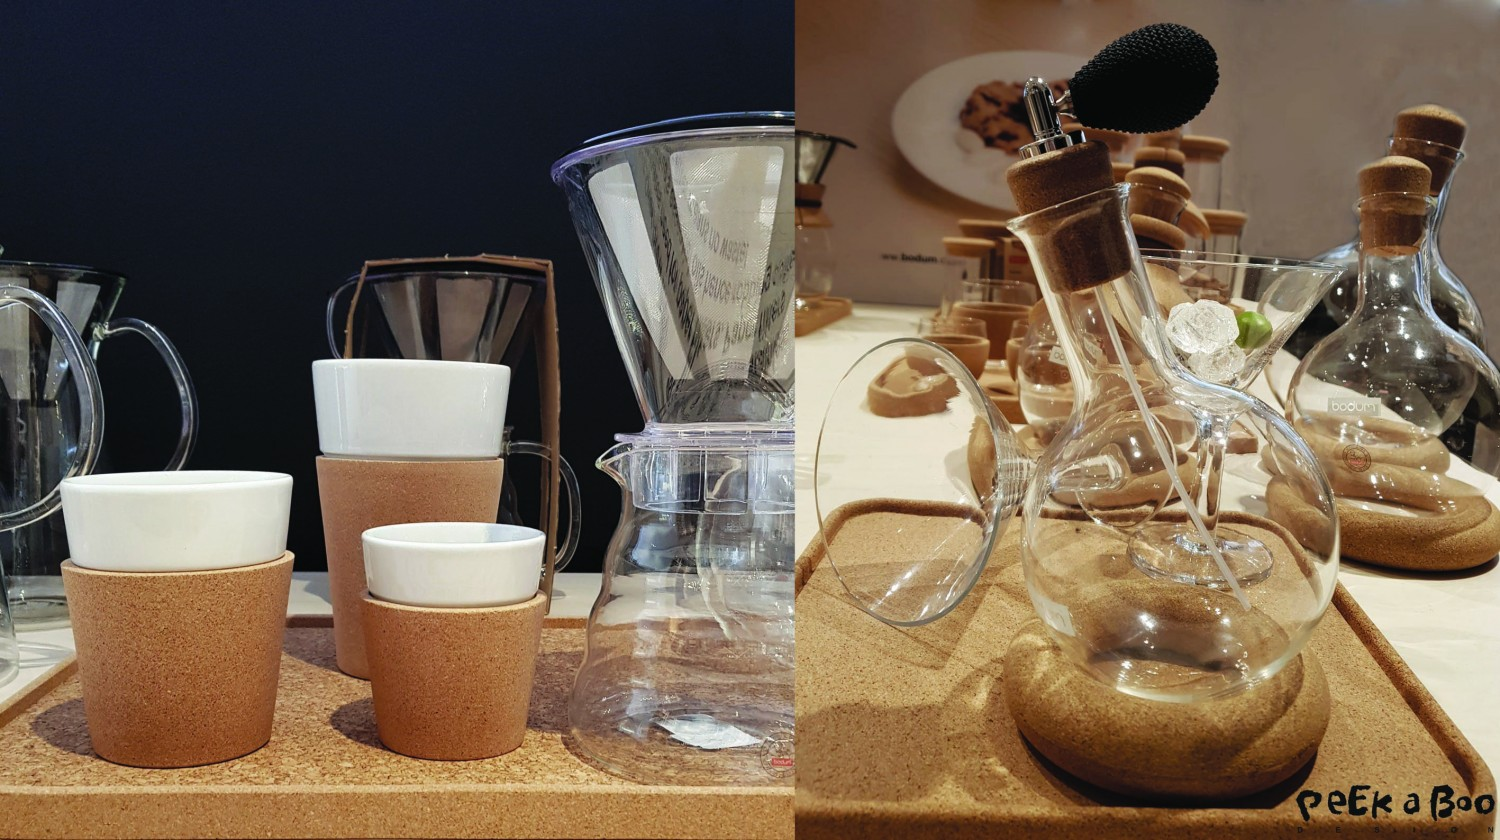 the danish kitchenware brand Bodum, has been using cork for a long time, these are some of their new designs.